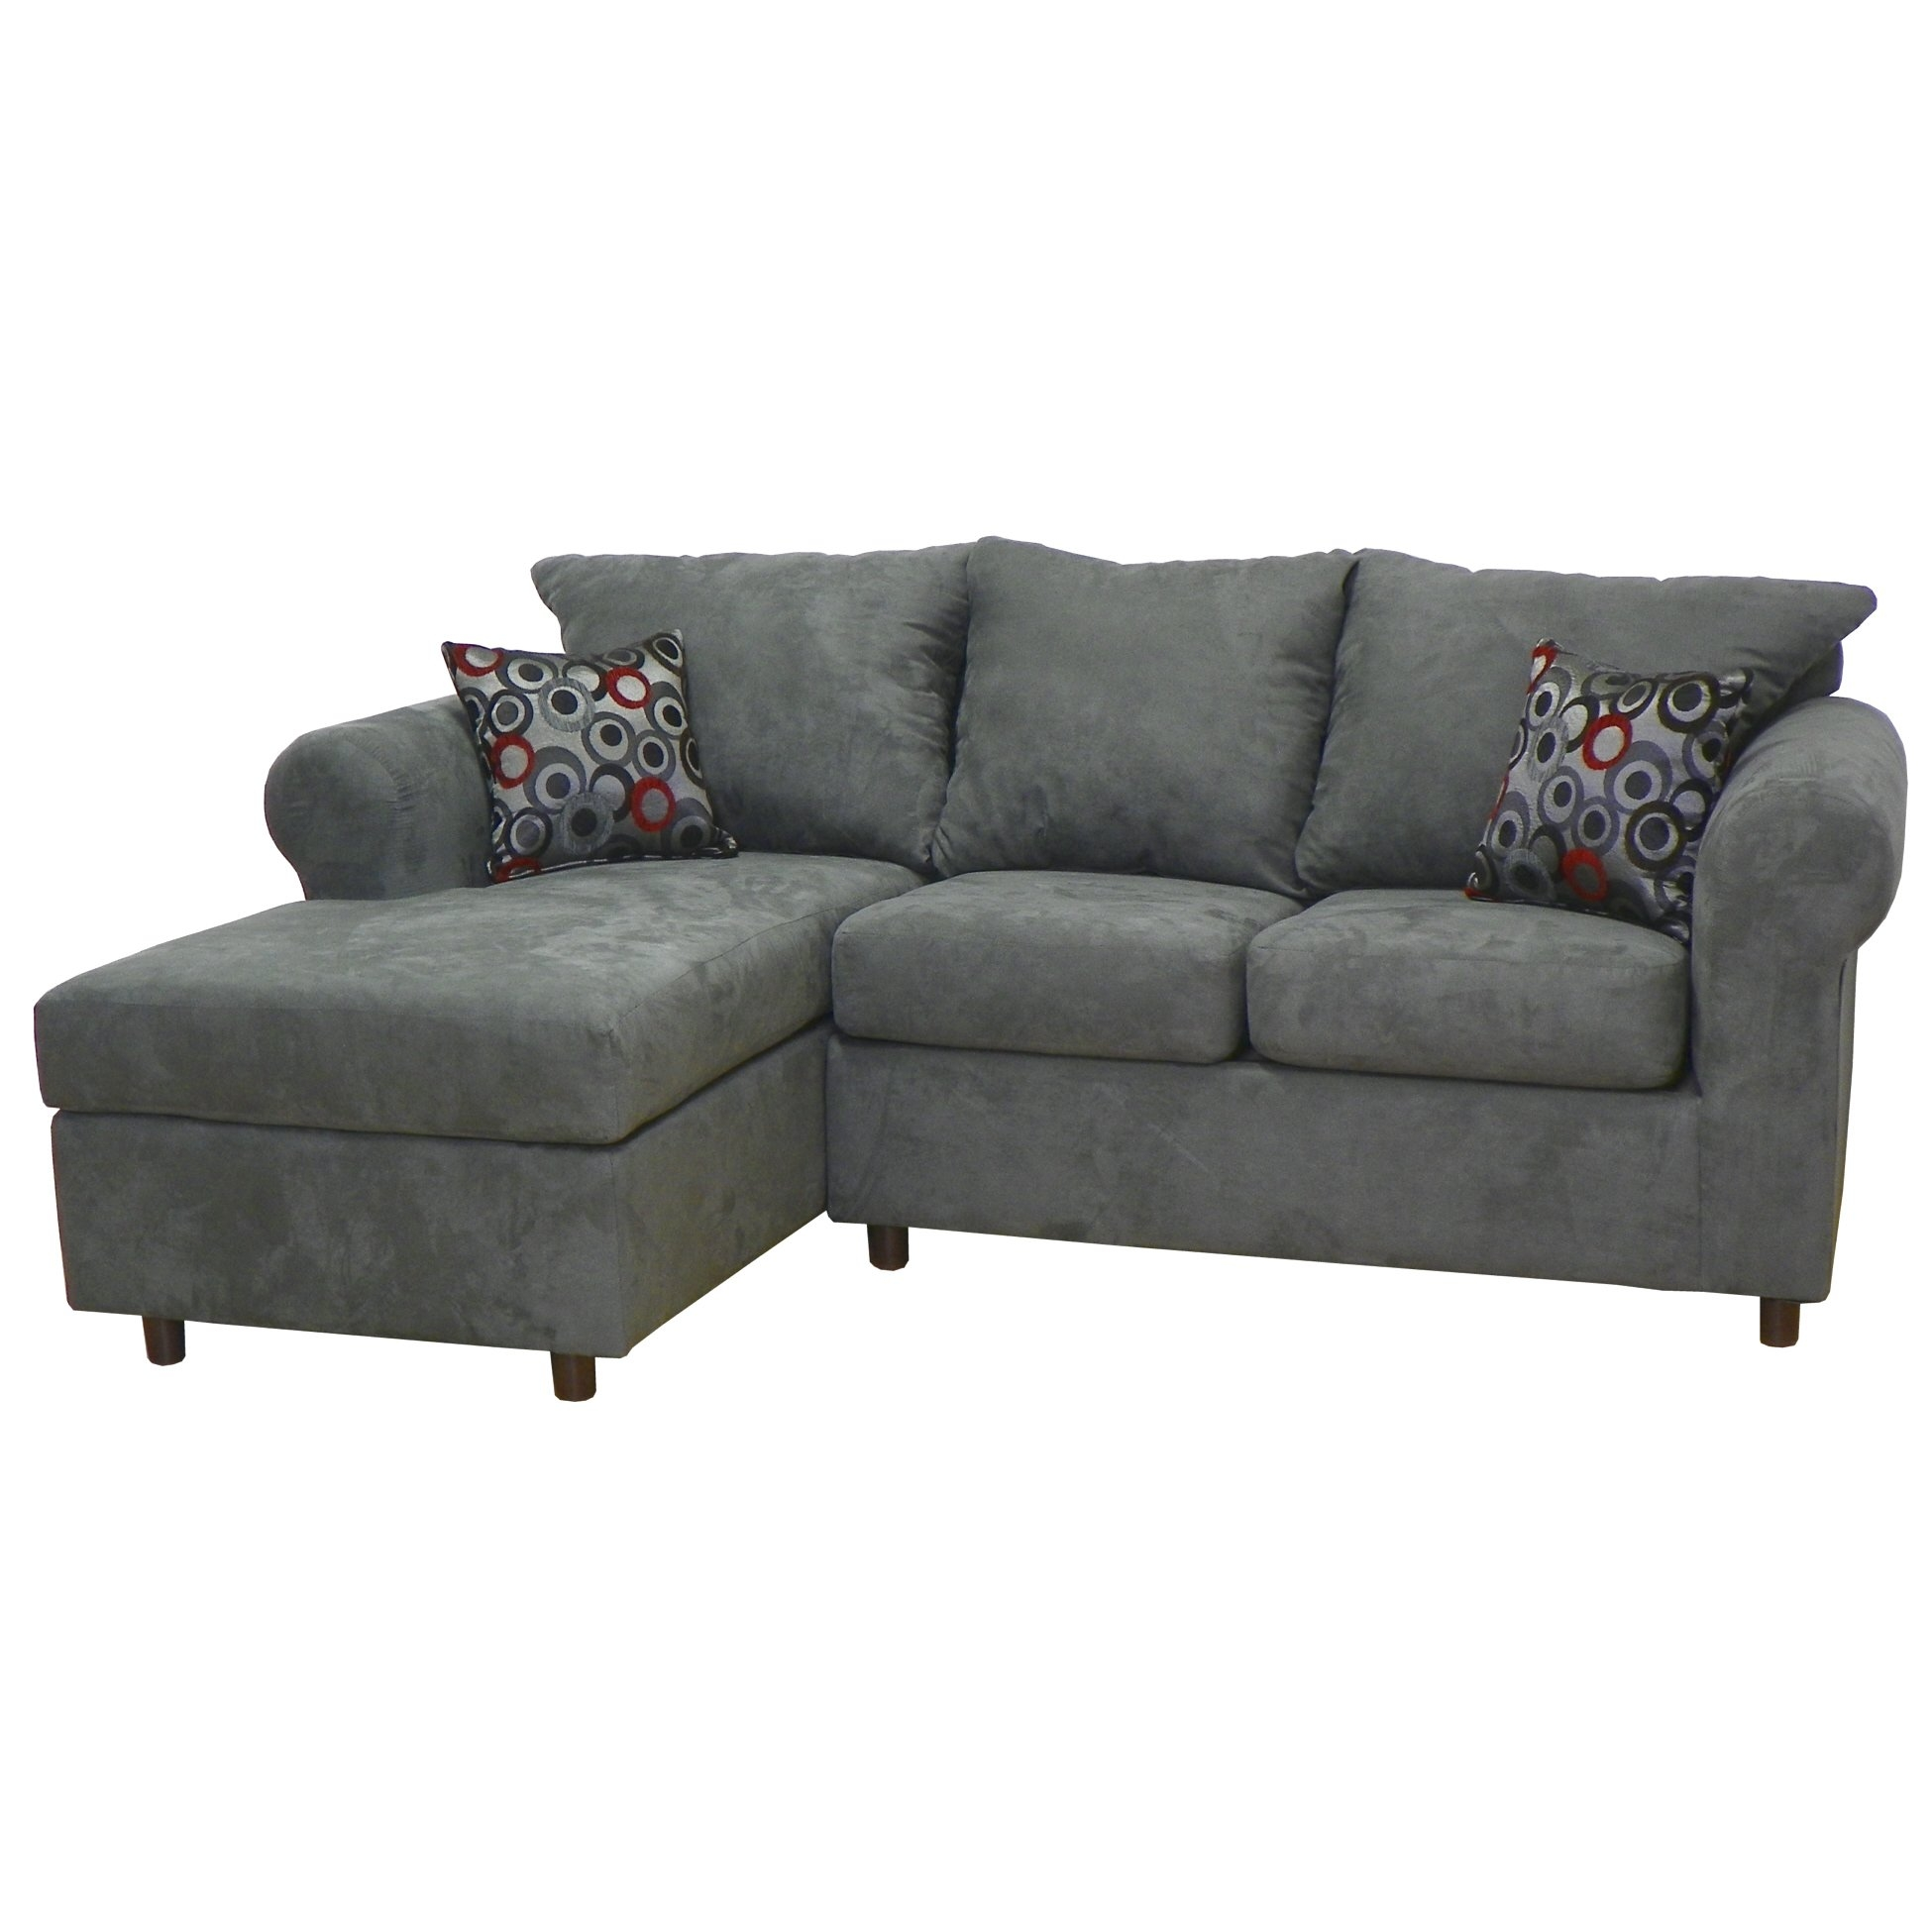 Sectional Sofas Youll Love Wayfair With Regard To 10 Piece Sectional Sofa (View 14 of 15)